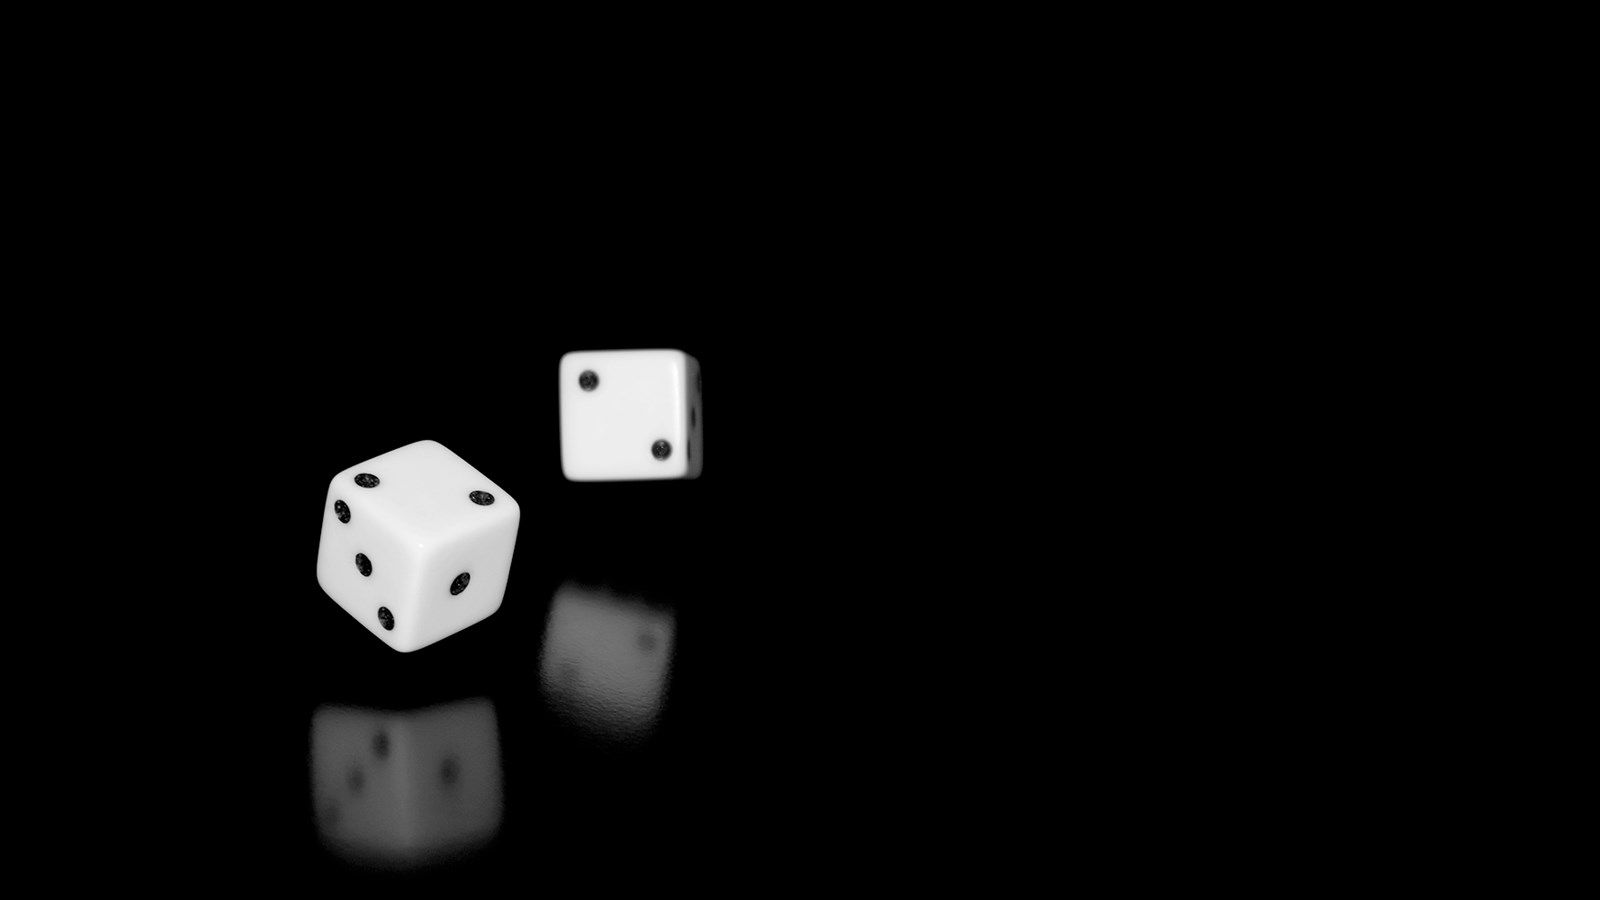 1600x900 Px Quality Cool Dice Wallpaper By Weston Ross For Pocketfullofgrace